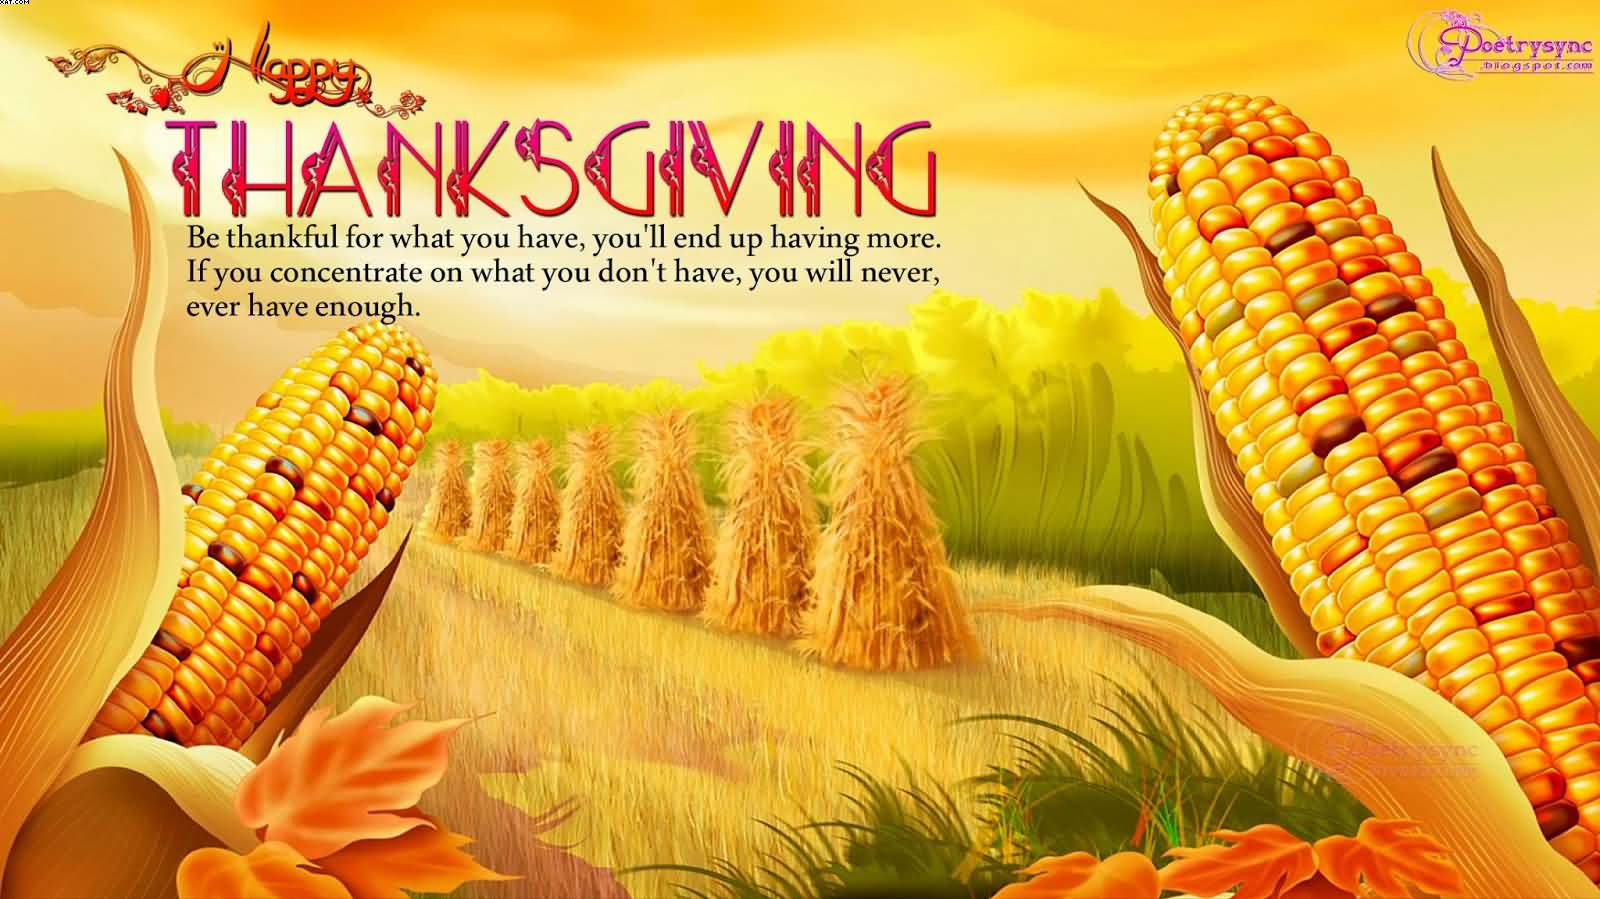 Fetching What You Have End Up Having More Happy Thanksgiving Be Thankful Happy Thanksgiving Be Thankful What You Have End Up Have A Happy Thanksgiving To You Too Have A Happy Thanksgiving Your Family ideas Have A Happy Thanksgiving